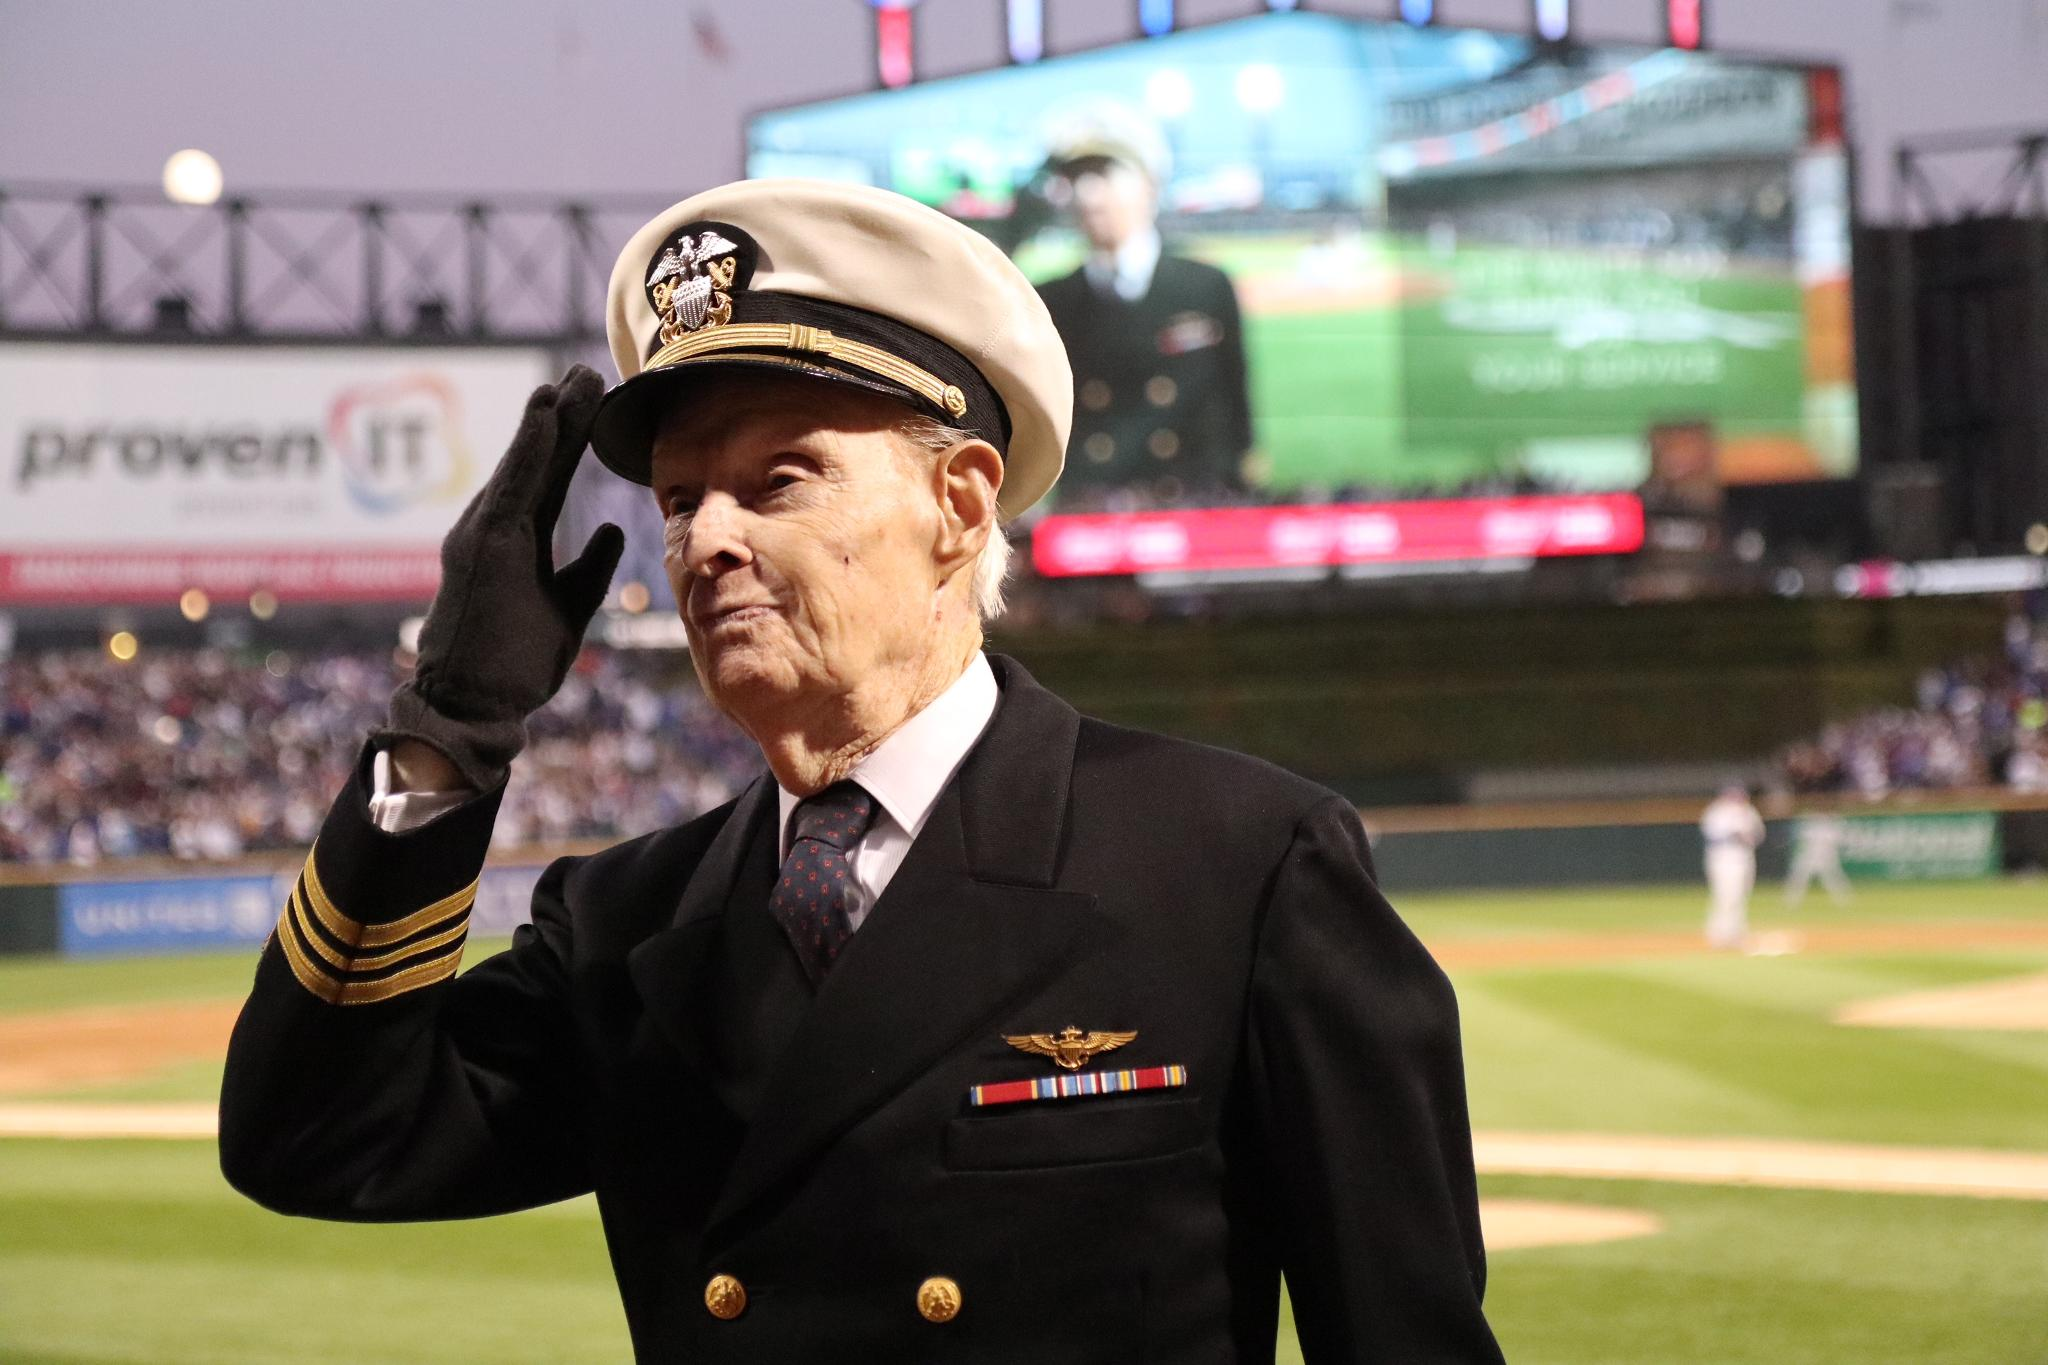 Tonight's Hero of the Game – WWII Commander Donald Thompson, U.S. Navy! ���� https://t.co/oLl6j8p7cs